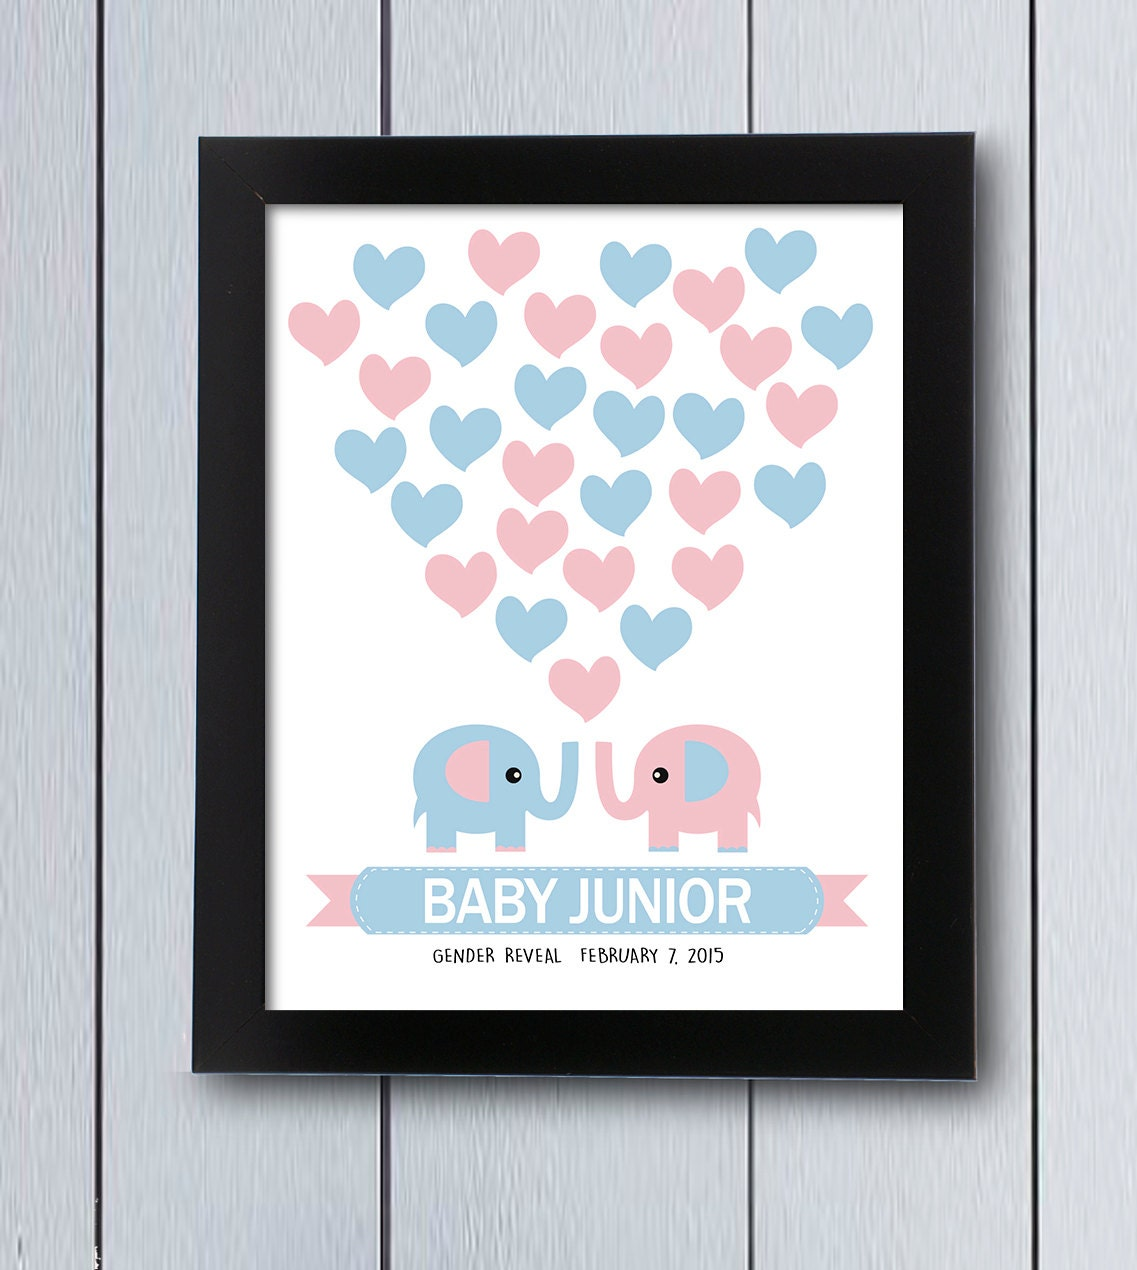 gender reveal party elephant guest book baby shower